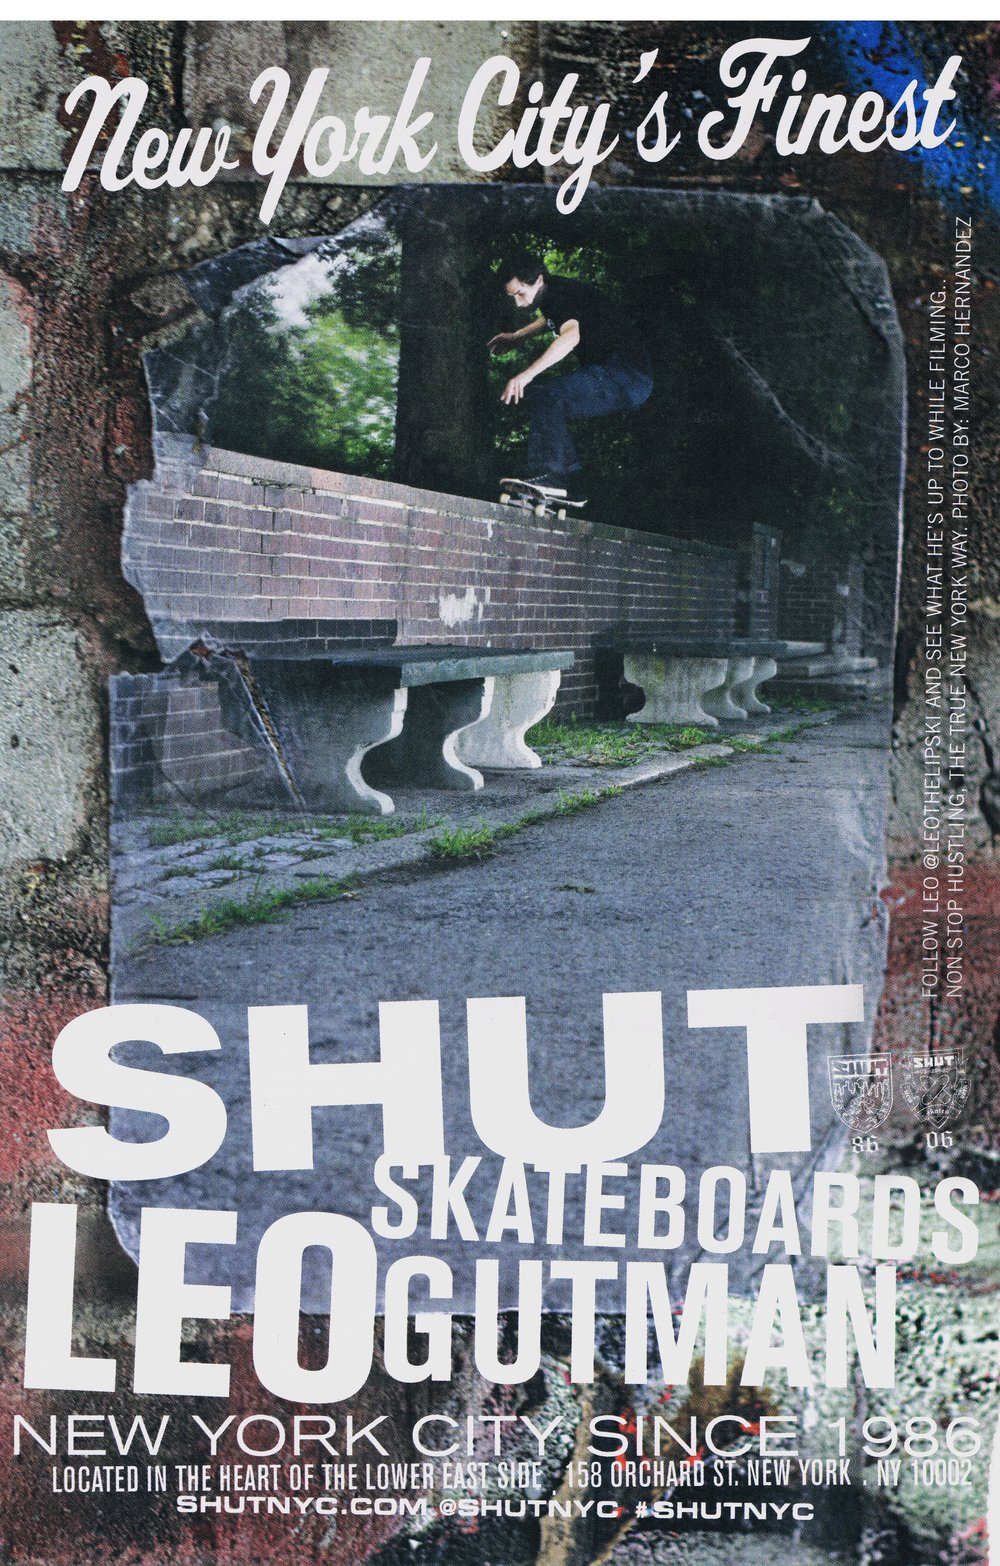 SHUT SKATEBOARDS LEO GUTMAN AD 2016